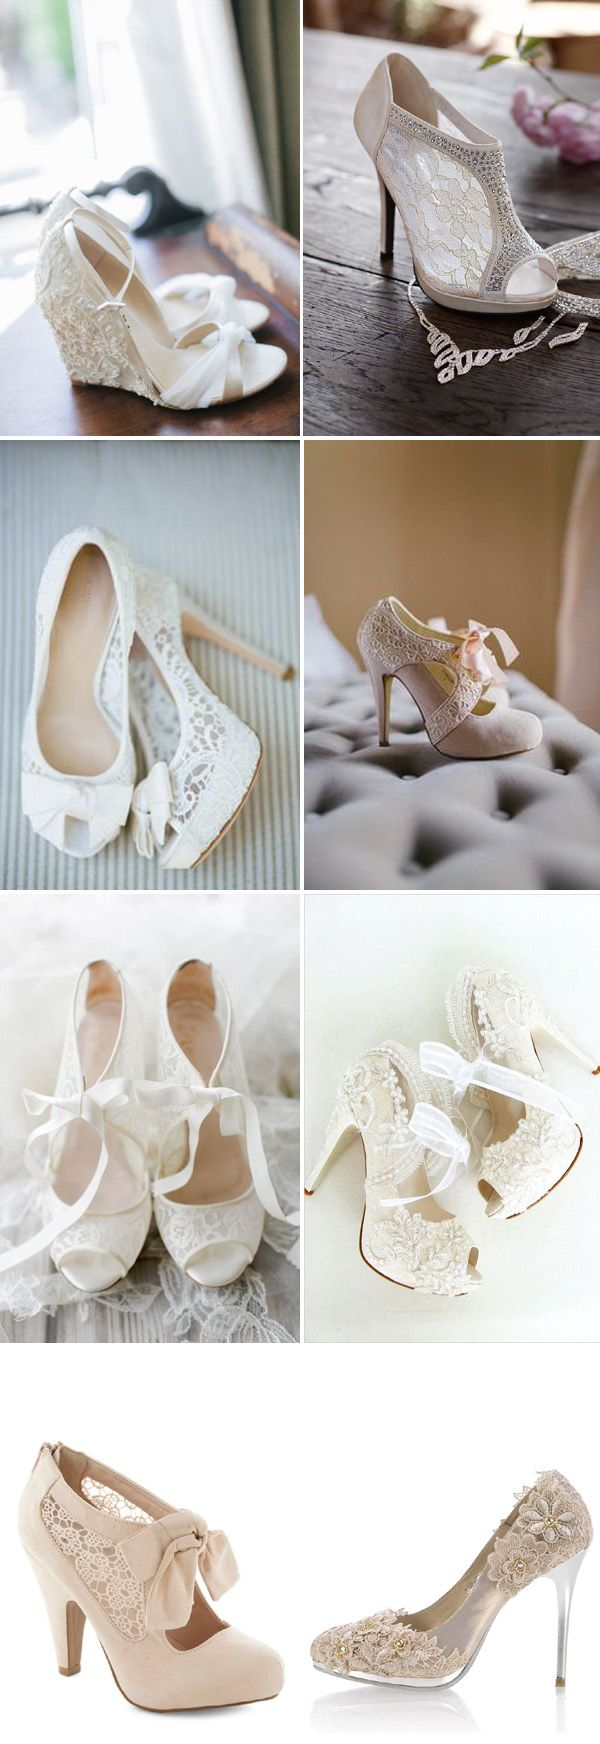 Zapatos para novia | bodatotal.com | wedding shoes, zapatos, bride, wedding…